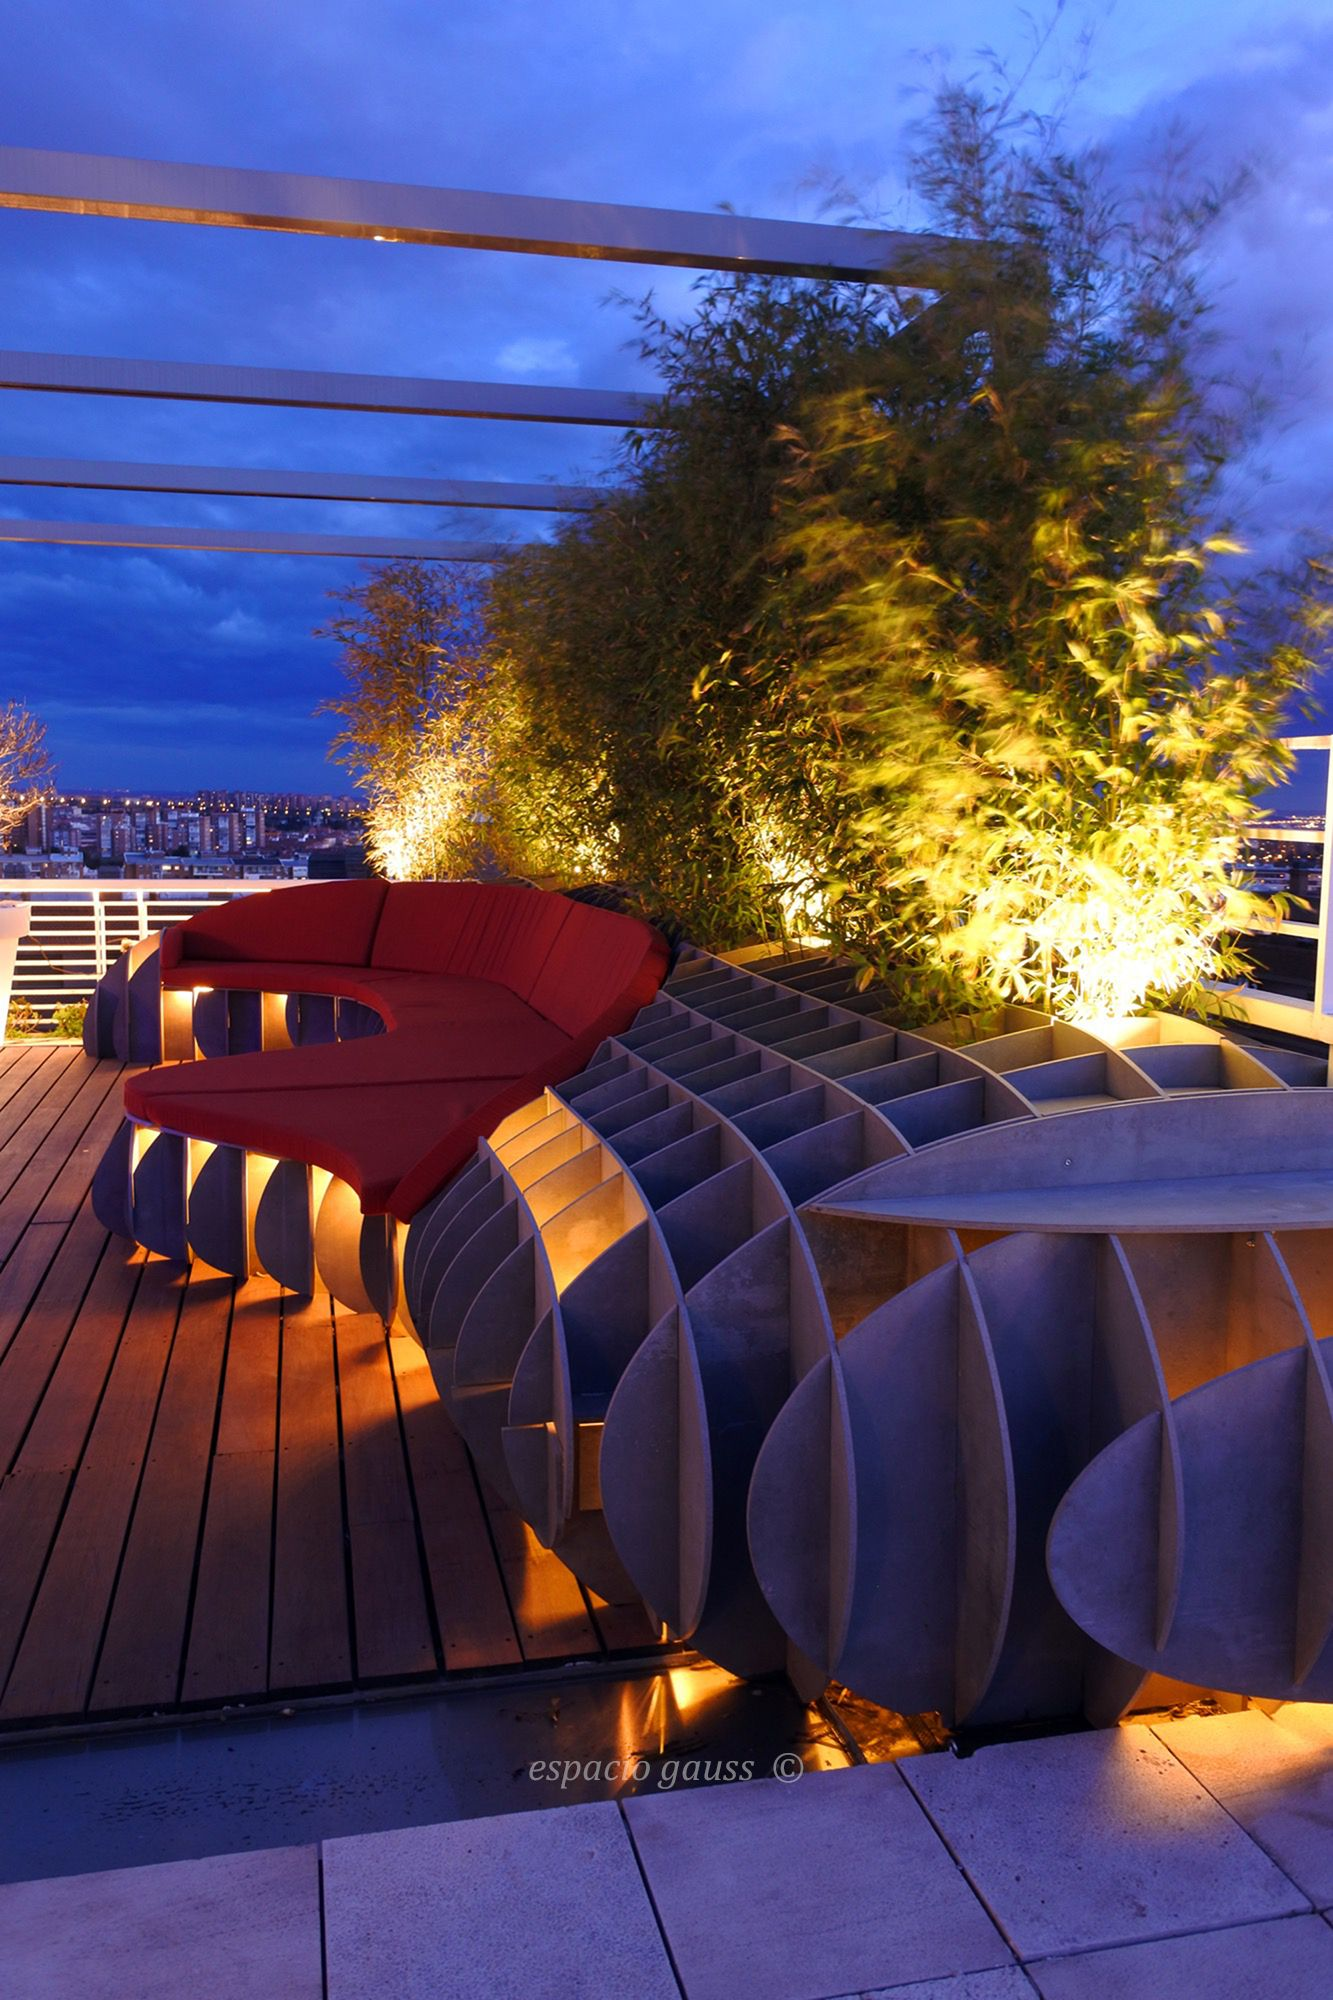 Madrid Controlmad Rooftop Chillout Design Architecture